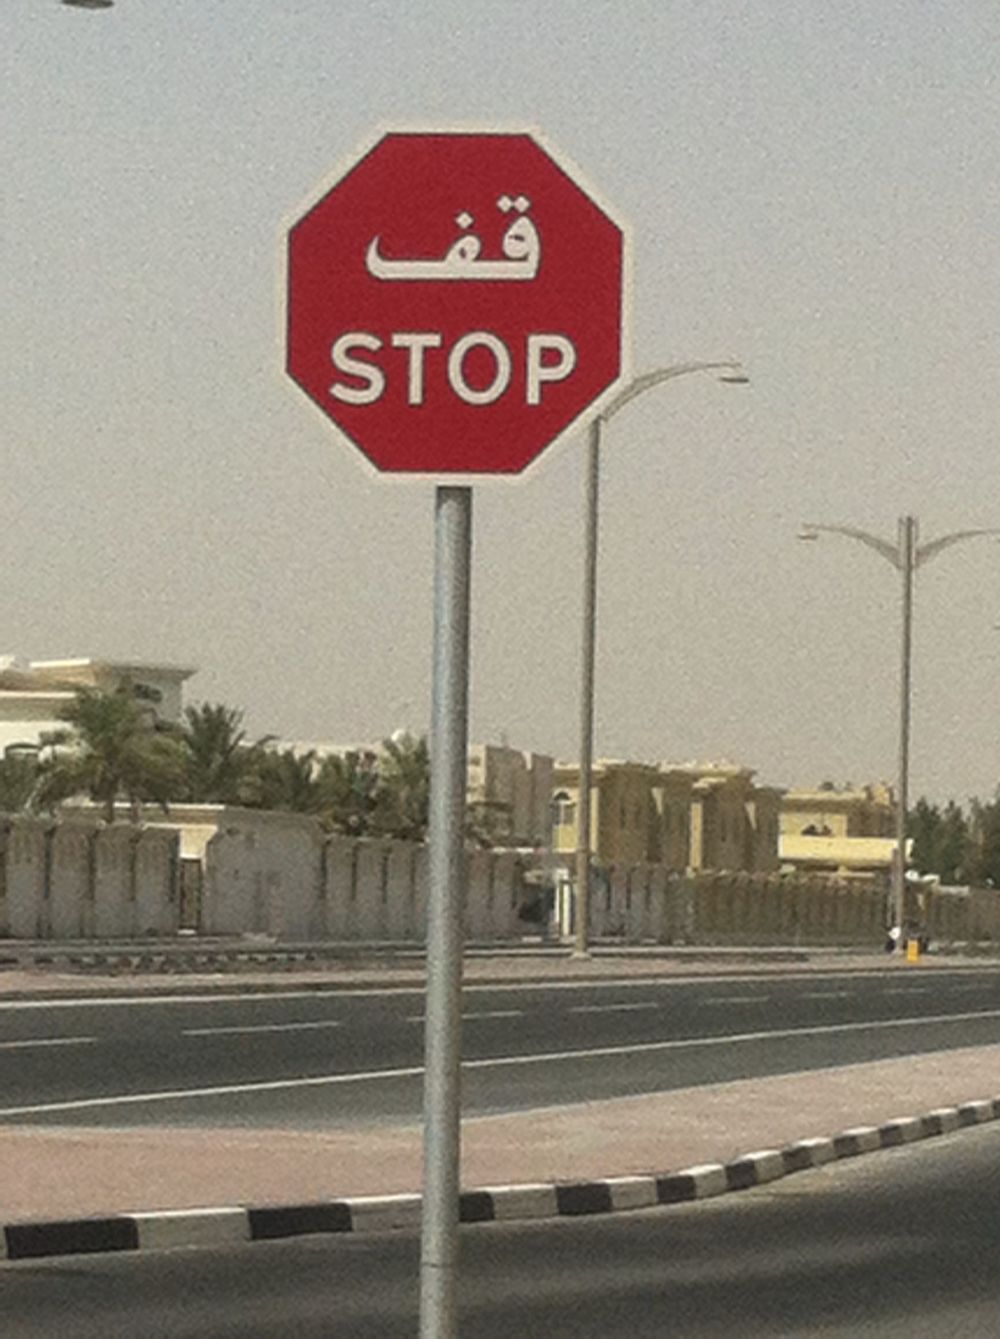 Stop sign in Arabic and English in Doha.